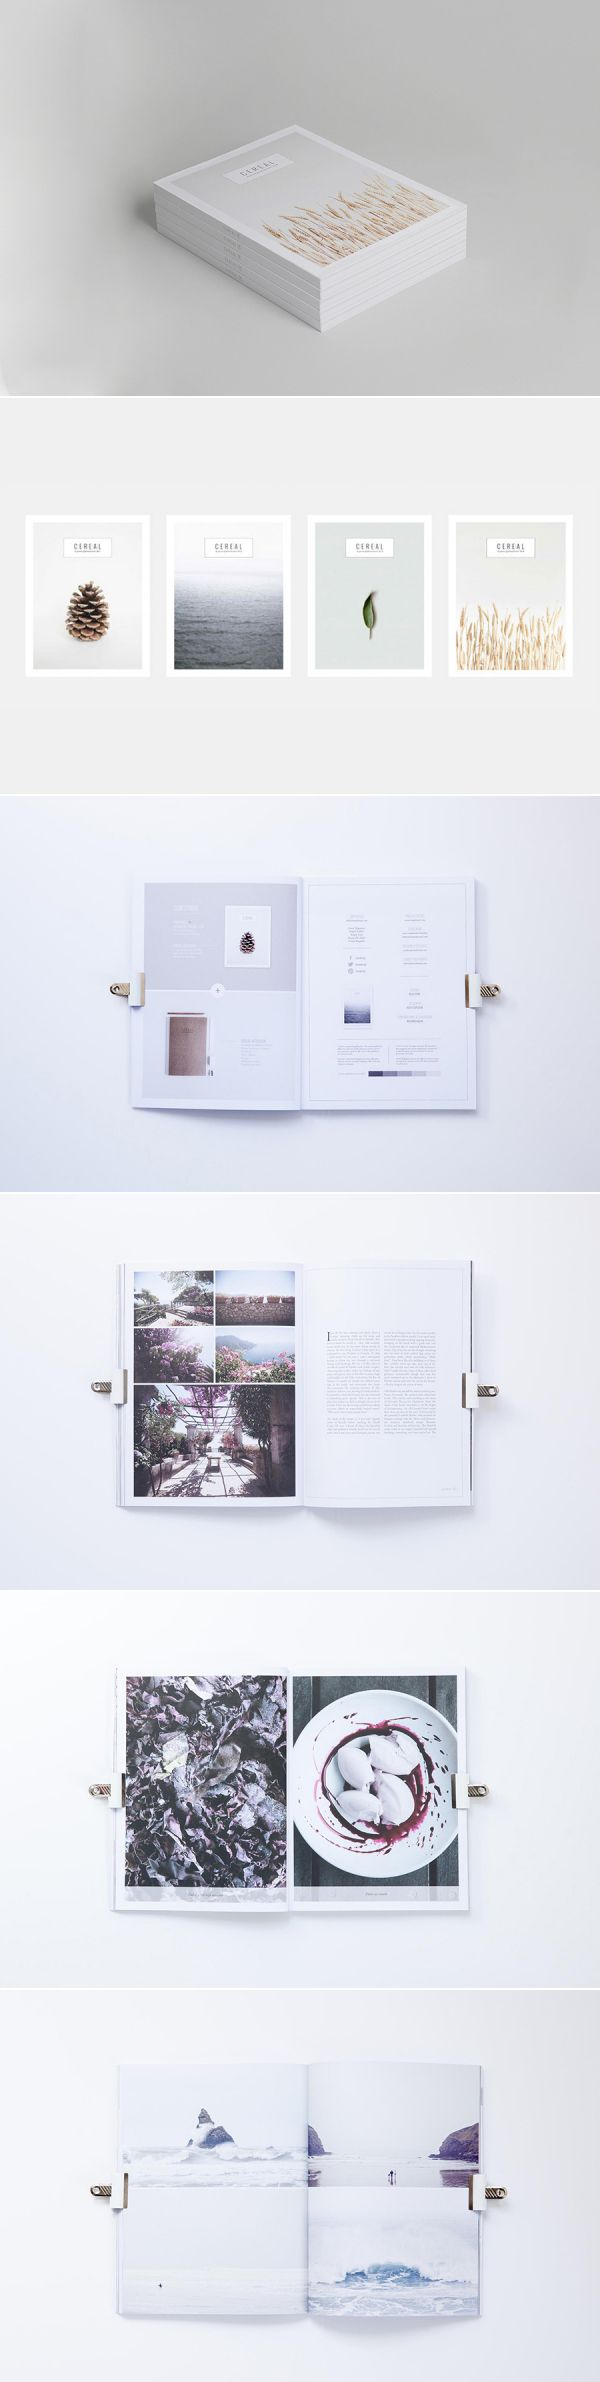 cereal magazine layout